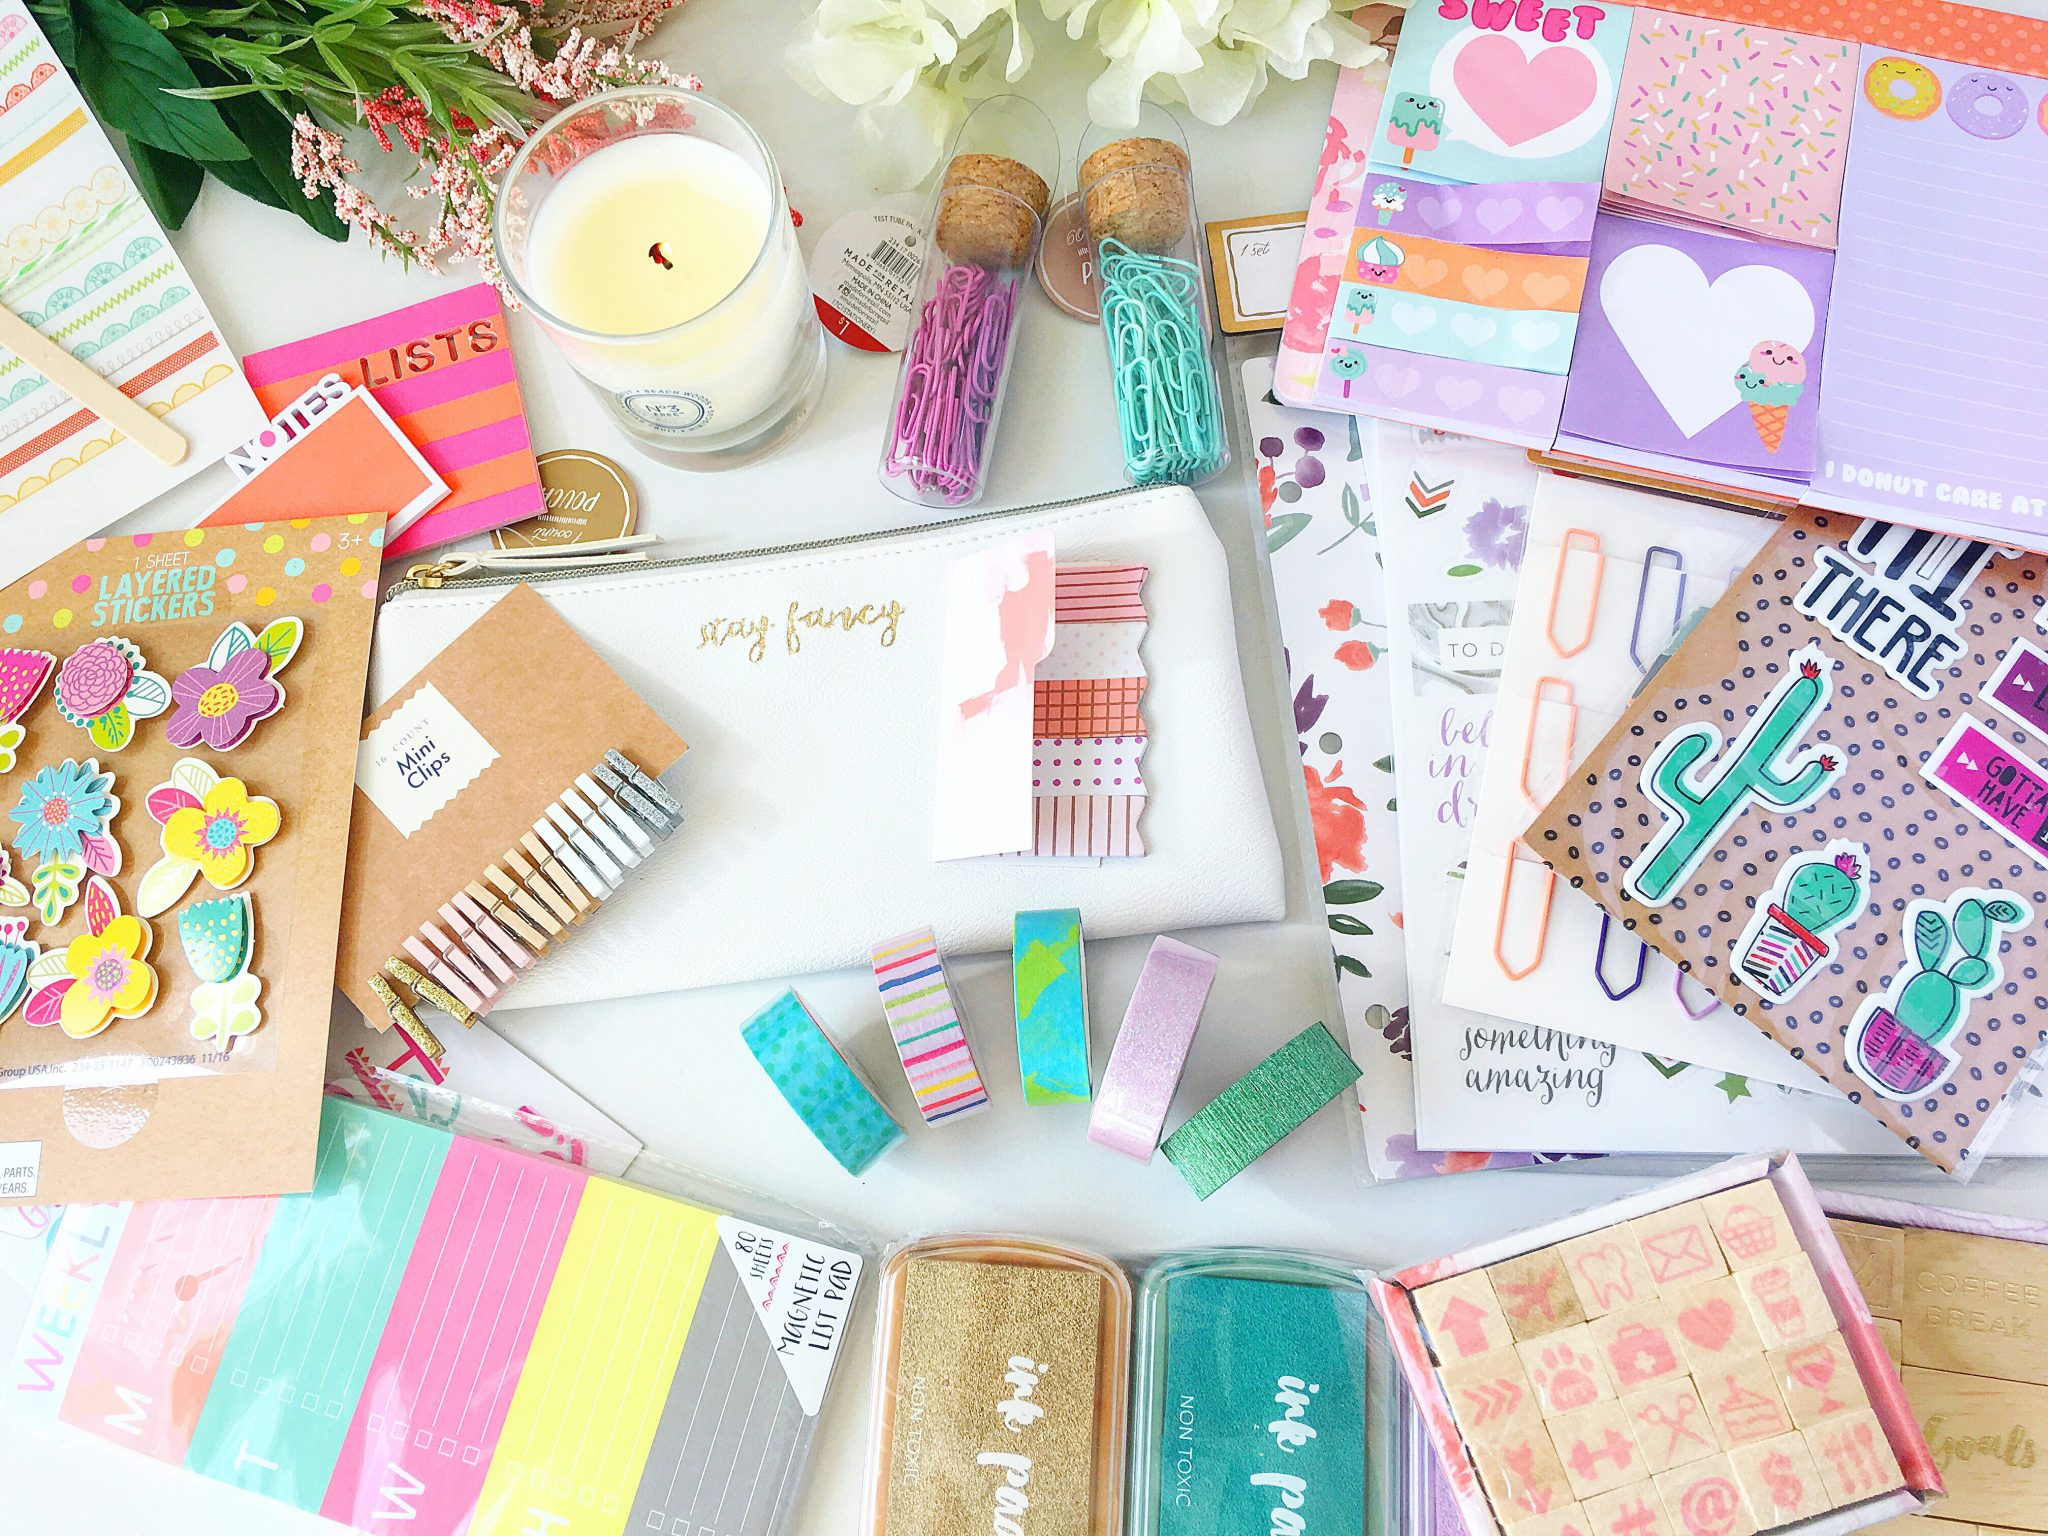 The Cutest Spring Planner Haul: Target Dollar Spot March 2017 graphic